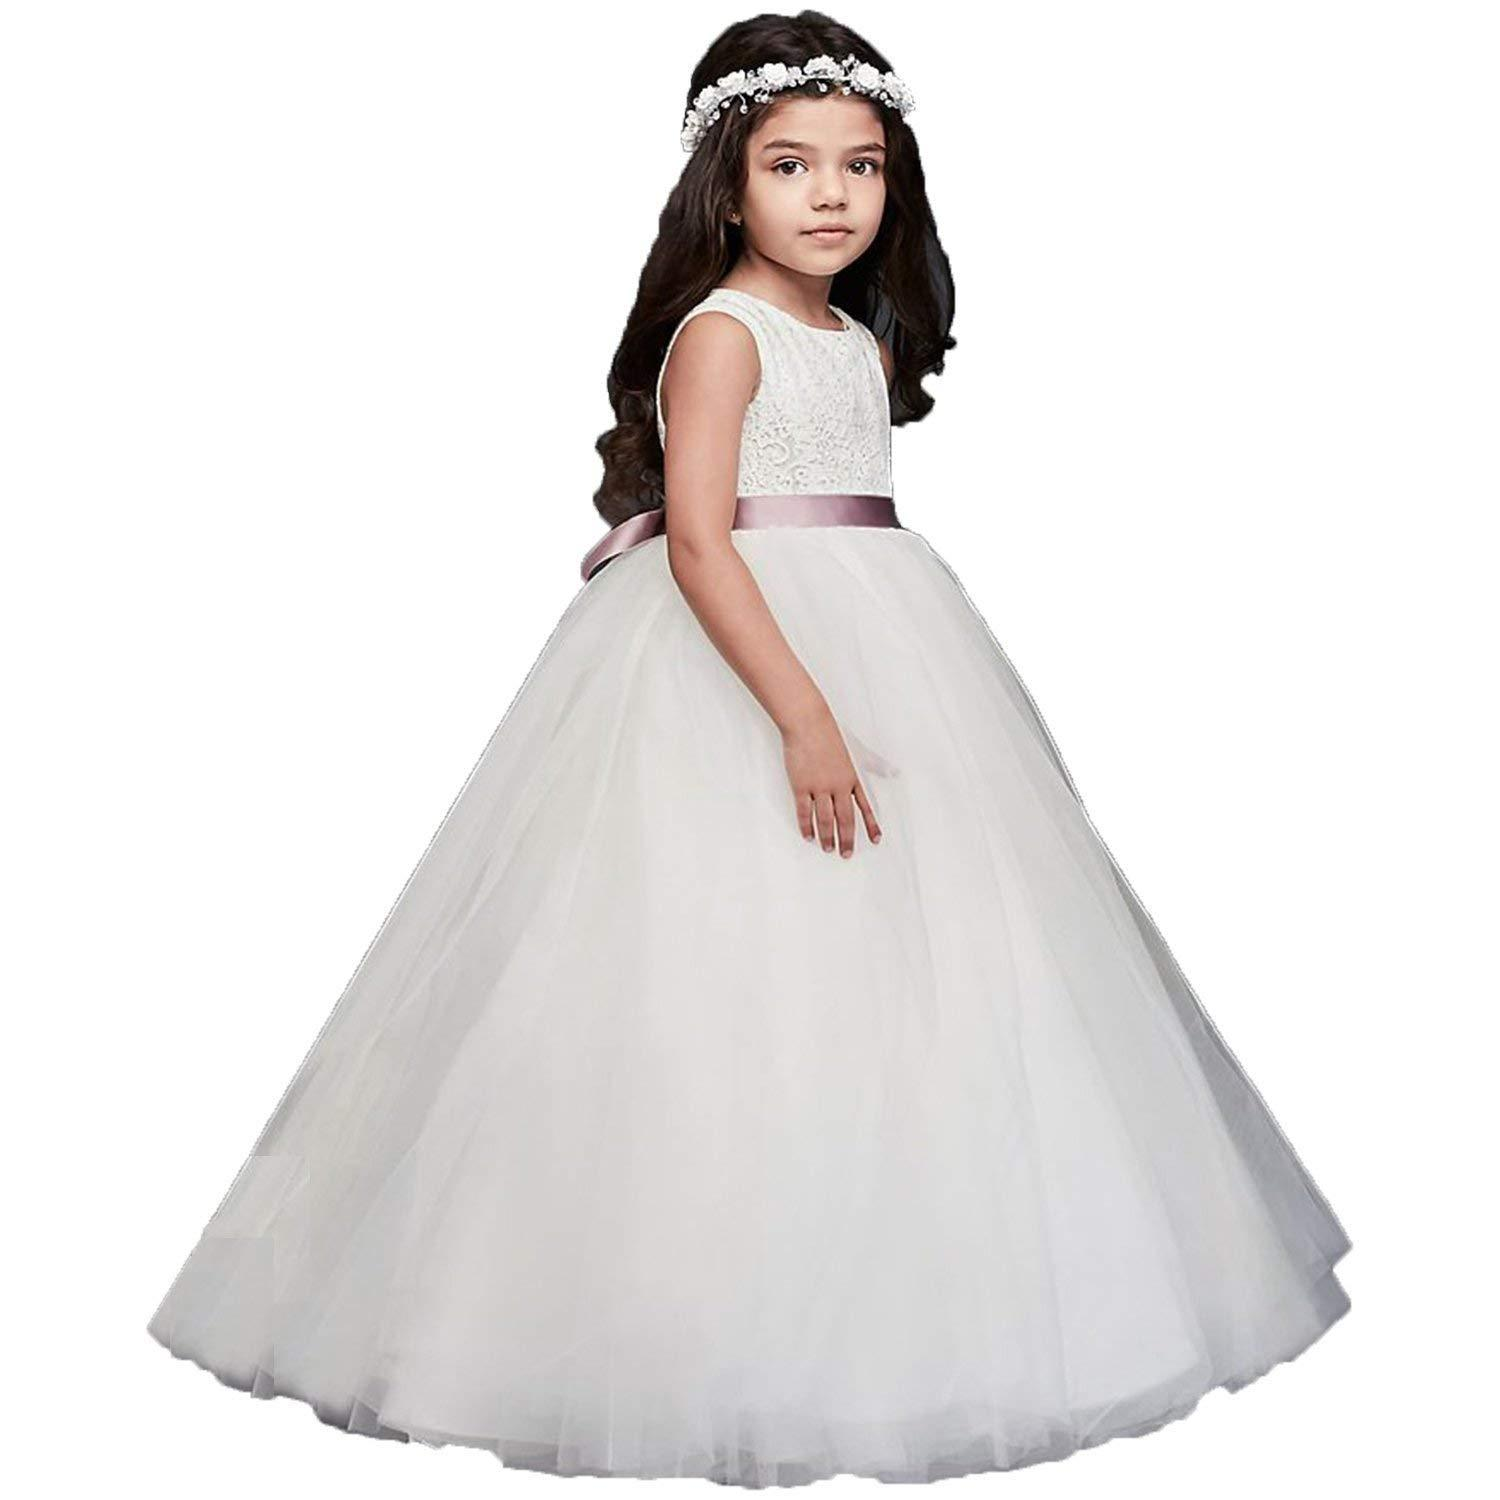 07b4535c62f Ivory Fancy Lace Flower Girl Dress With Heart Cutout On Back 2 14 Years Old  Girl Bridesmaid Dress Communion Dresses For Flower Girls Dresses Girl From  ...